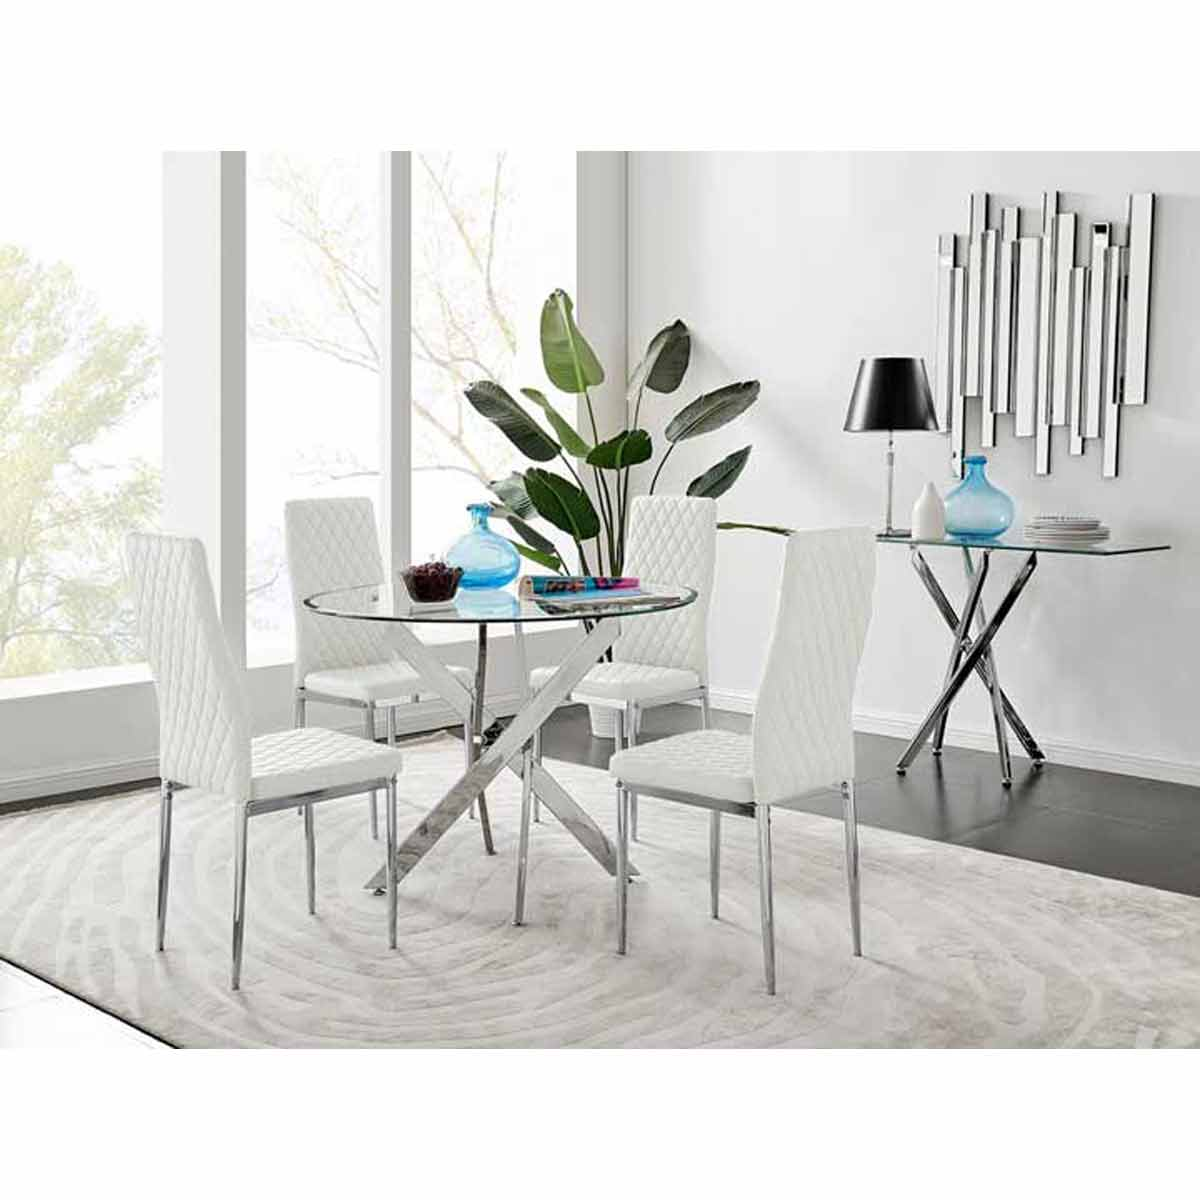 Furniture Box Novara Round Chrome Metal And Glass Dining Table And 4 White Milan Dining Chairs Set